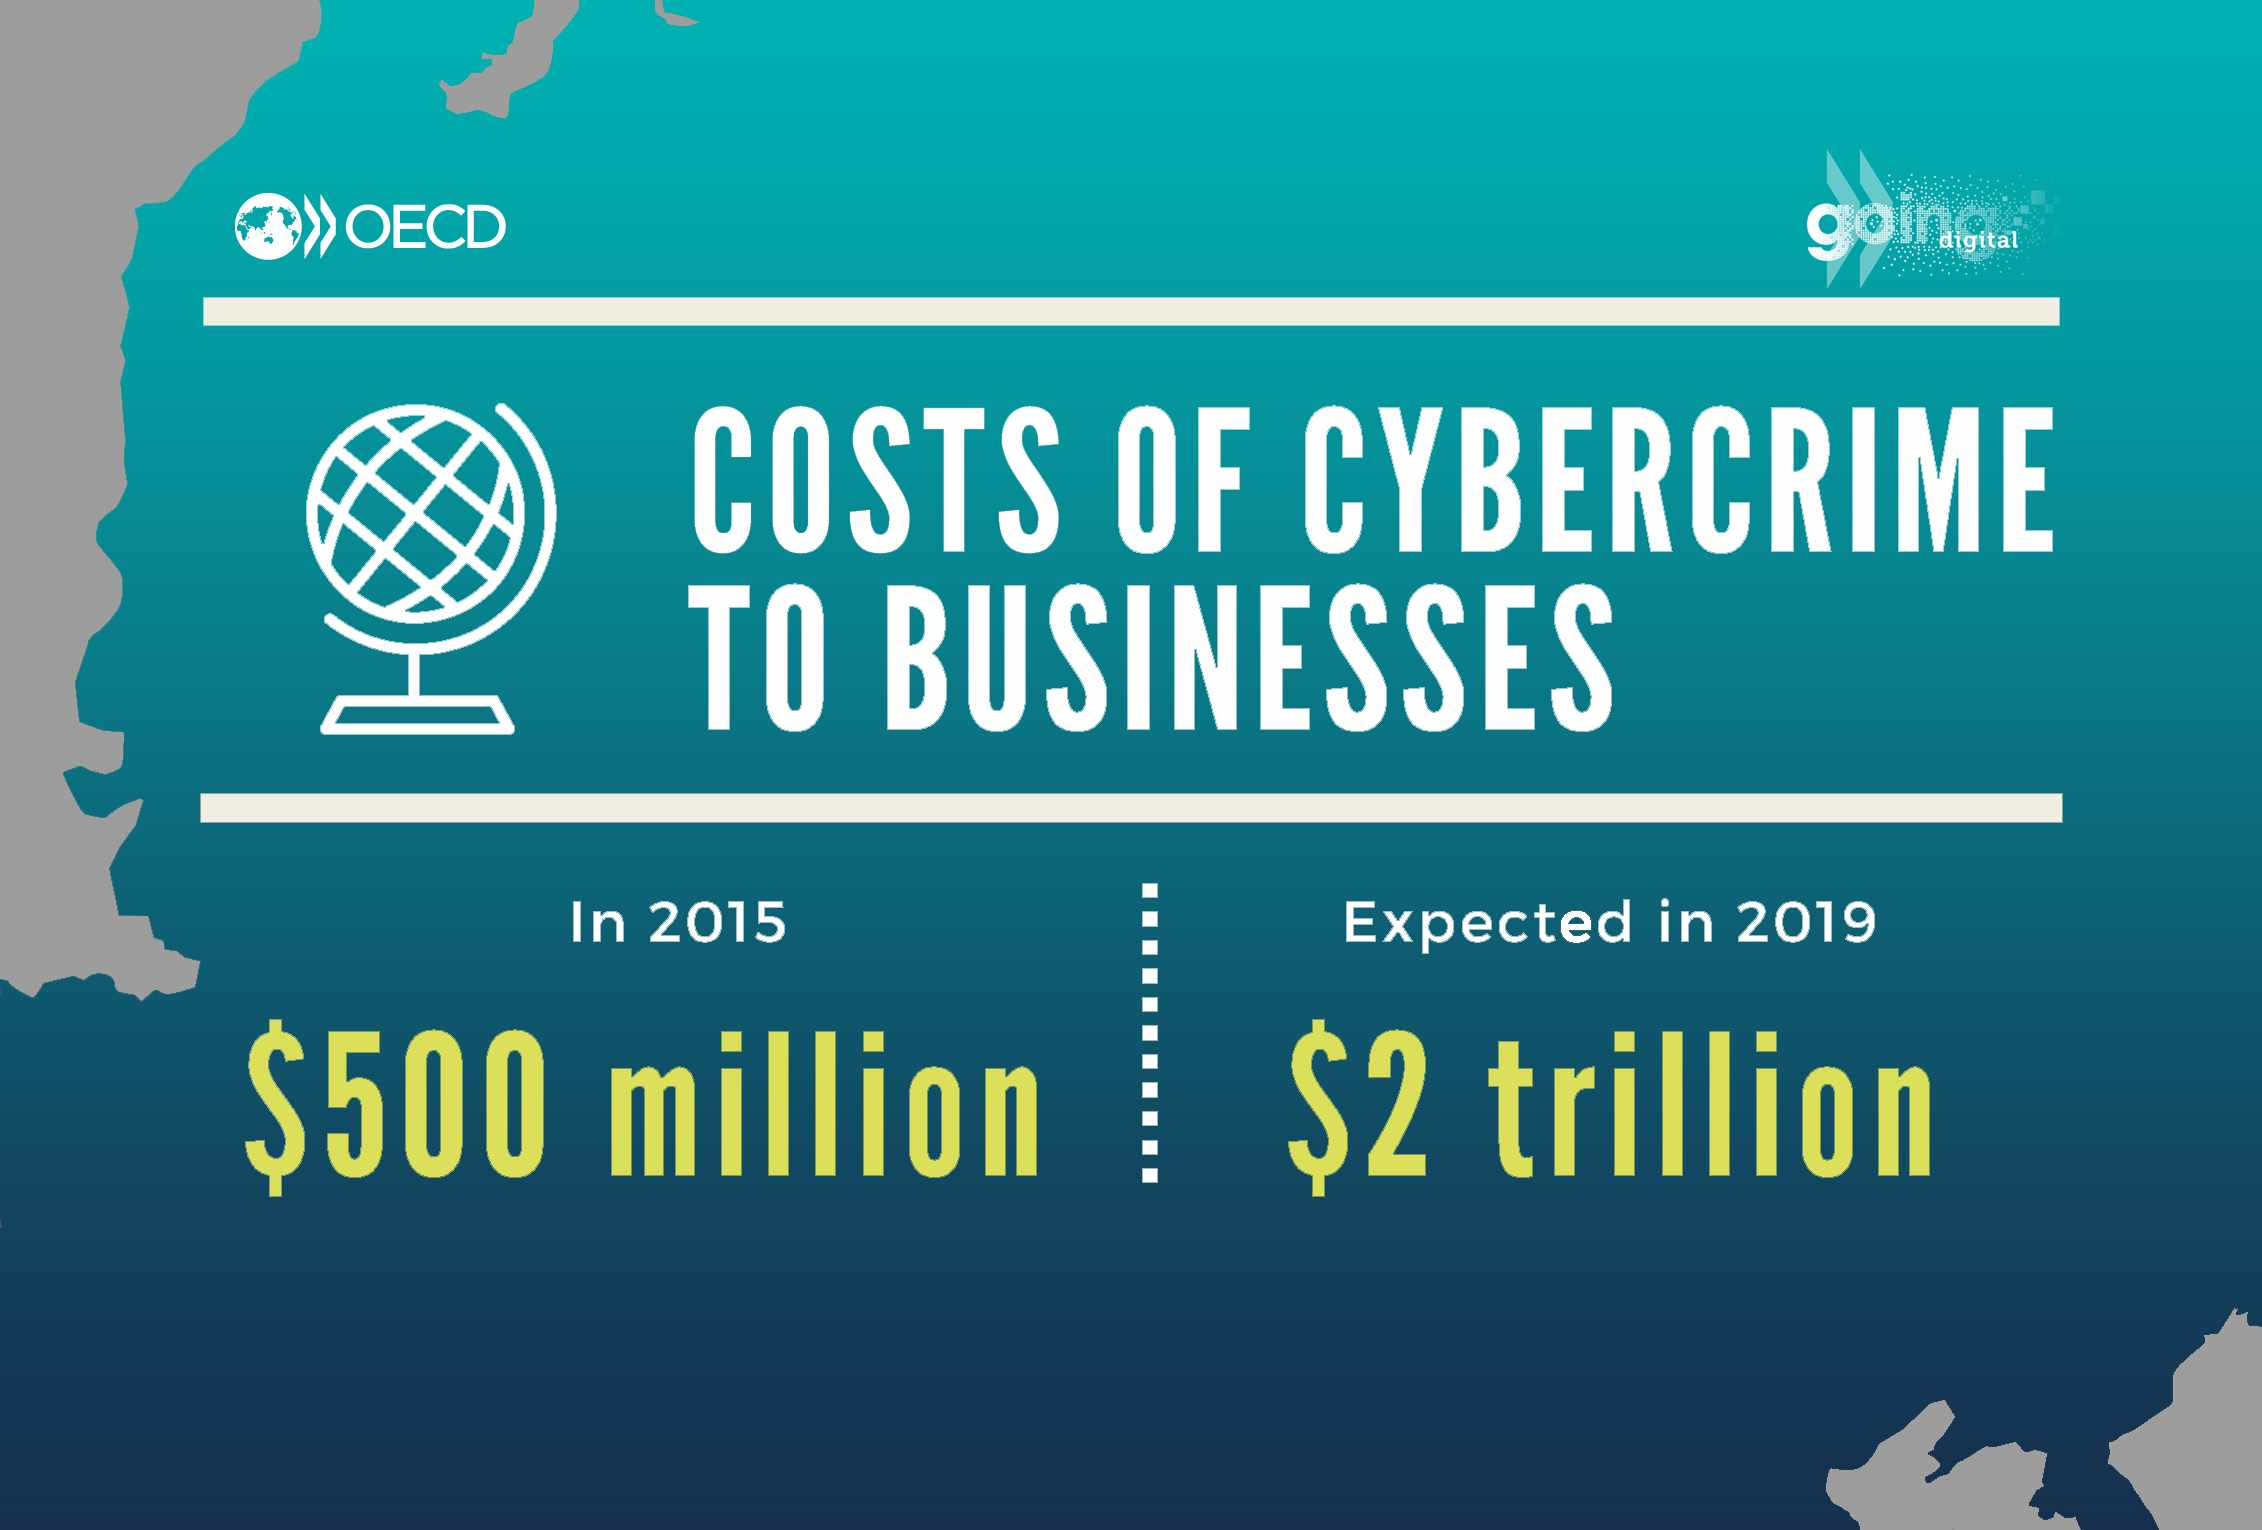 Costs of cybercrime